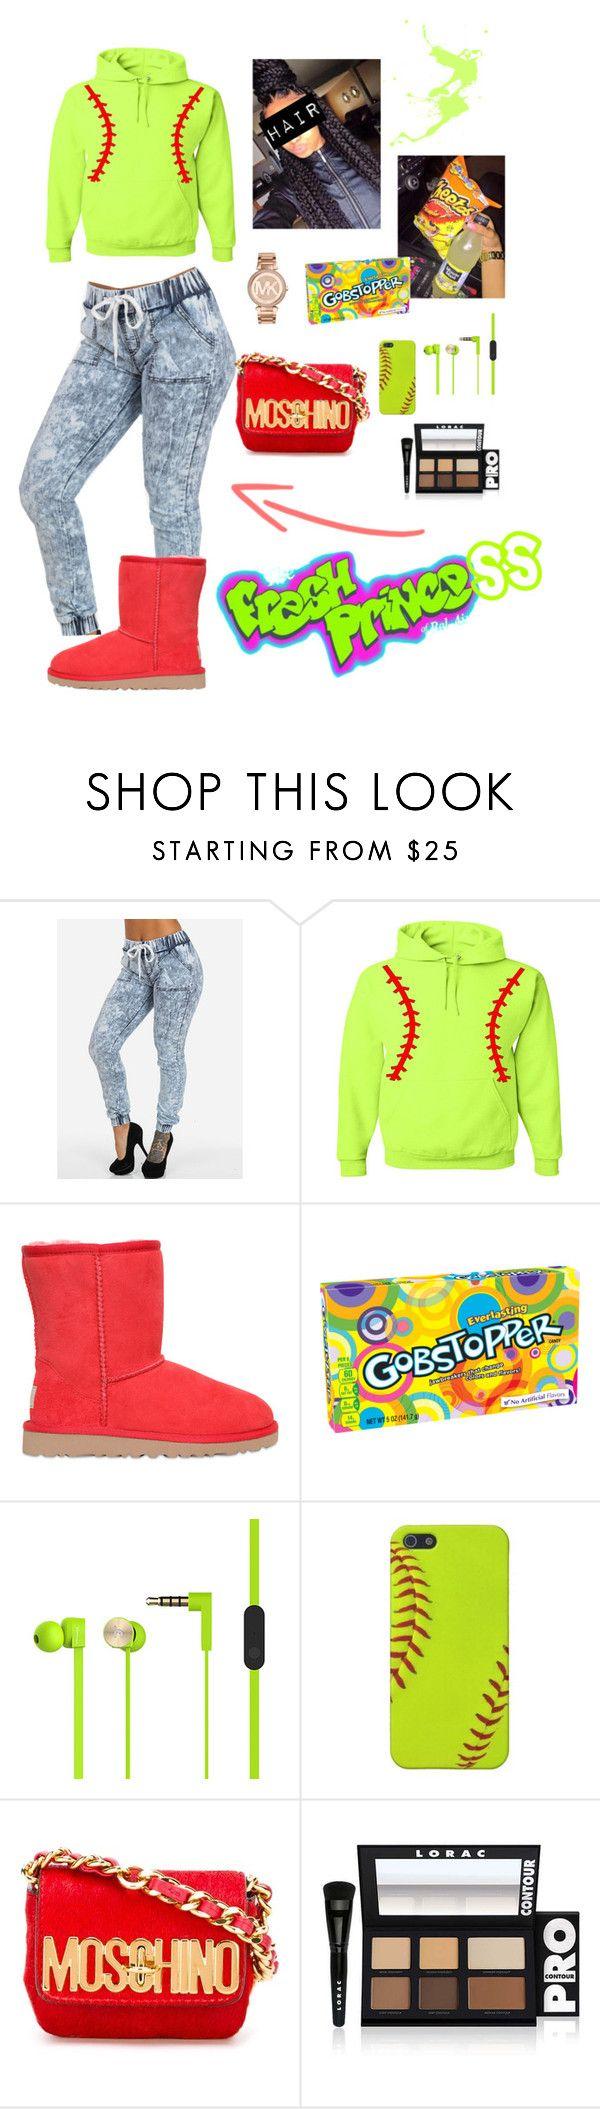 """Softball"" by onenuni on Polyvore featuring UGG Australia, Poetic Justice, Junk Food Clothing, Moschino, LORAC and Michael Kors"